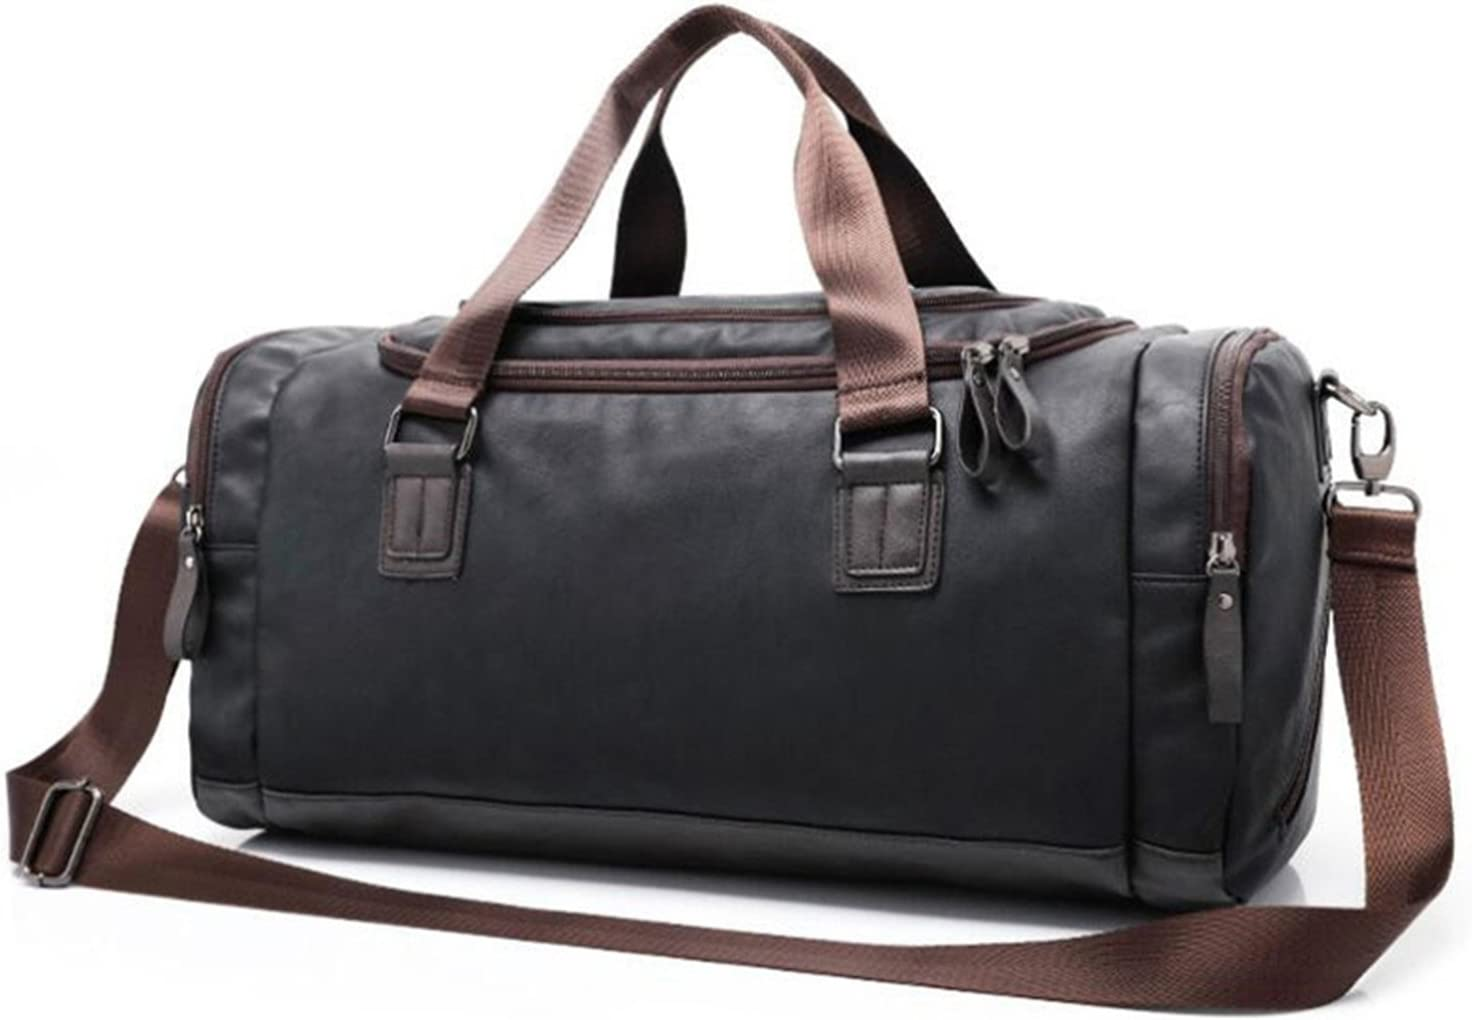 Paddy Meredith Hot Men Large Pu Leather Sports Gym Bag Fitness Training Yoga Bags Duffel Tote Travel Handbag Male Outdoor Shoulder Bag 2